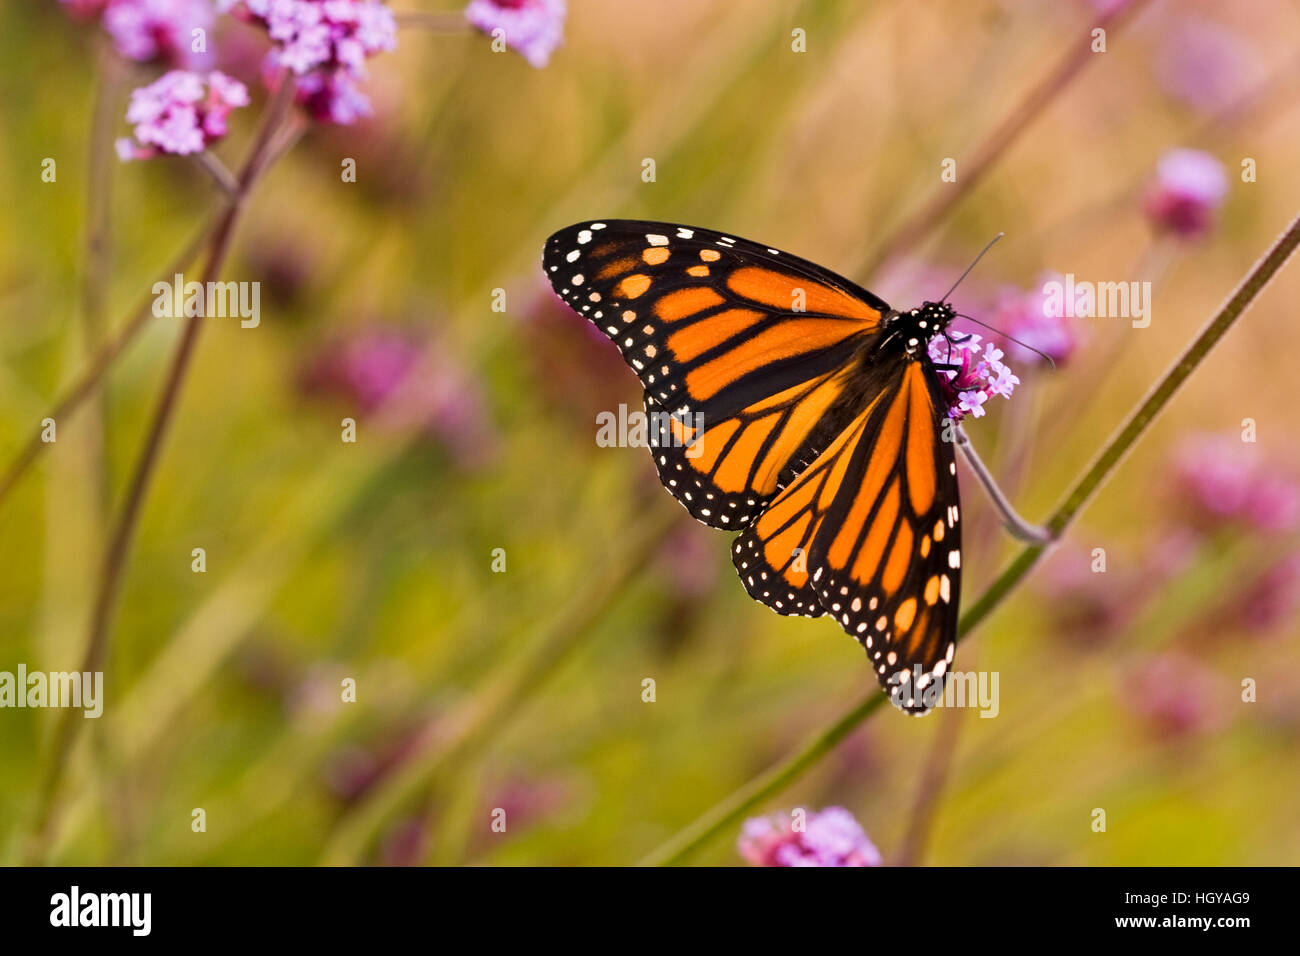 A monarch butterfly in Meredith, New Hampshire. - Stock Image